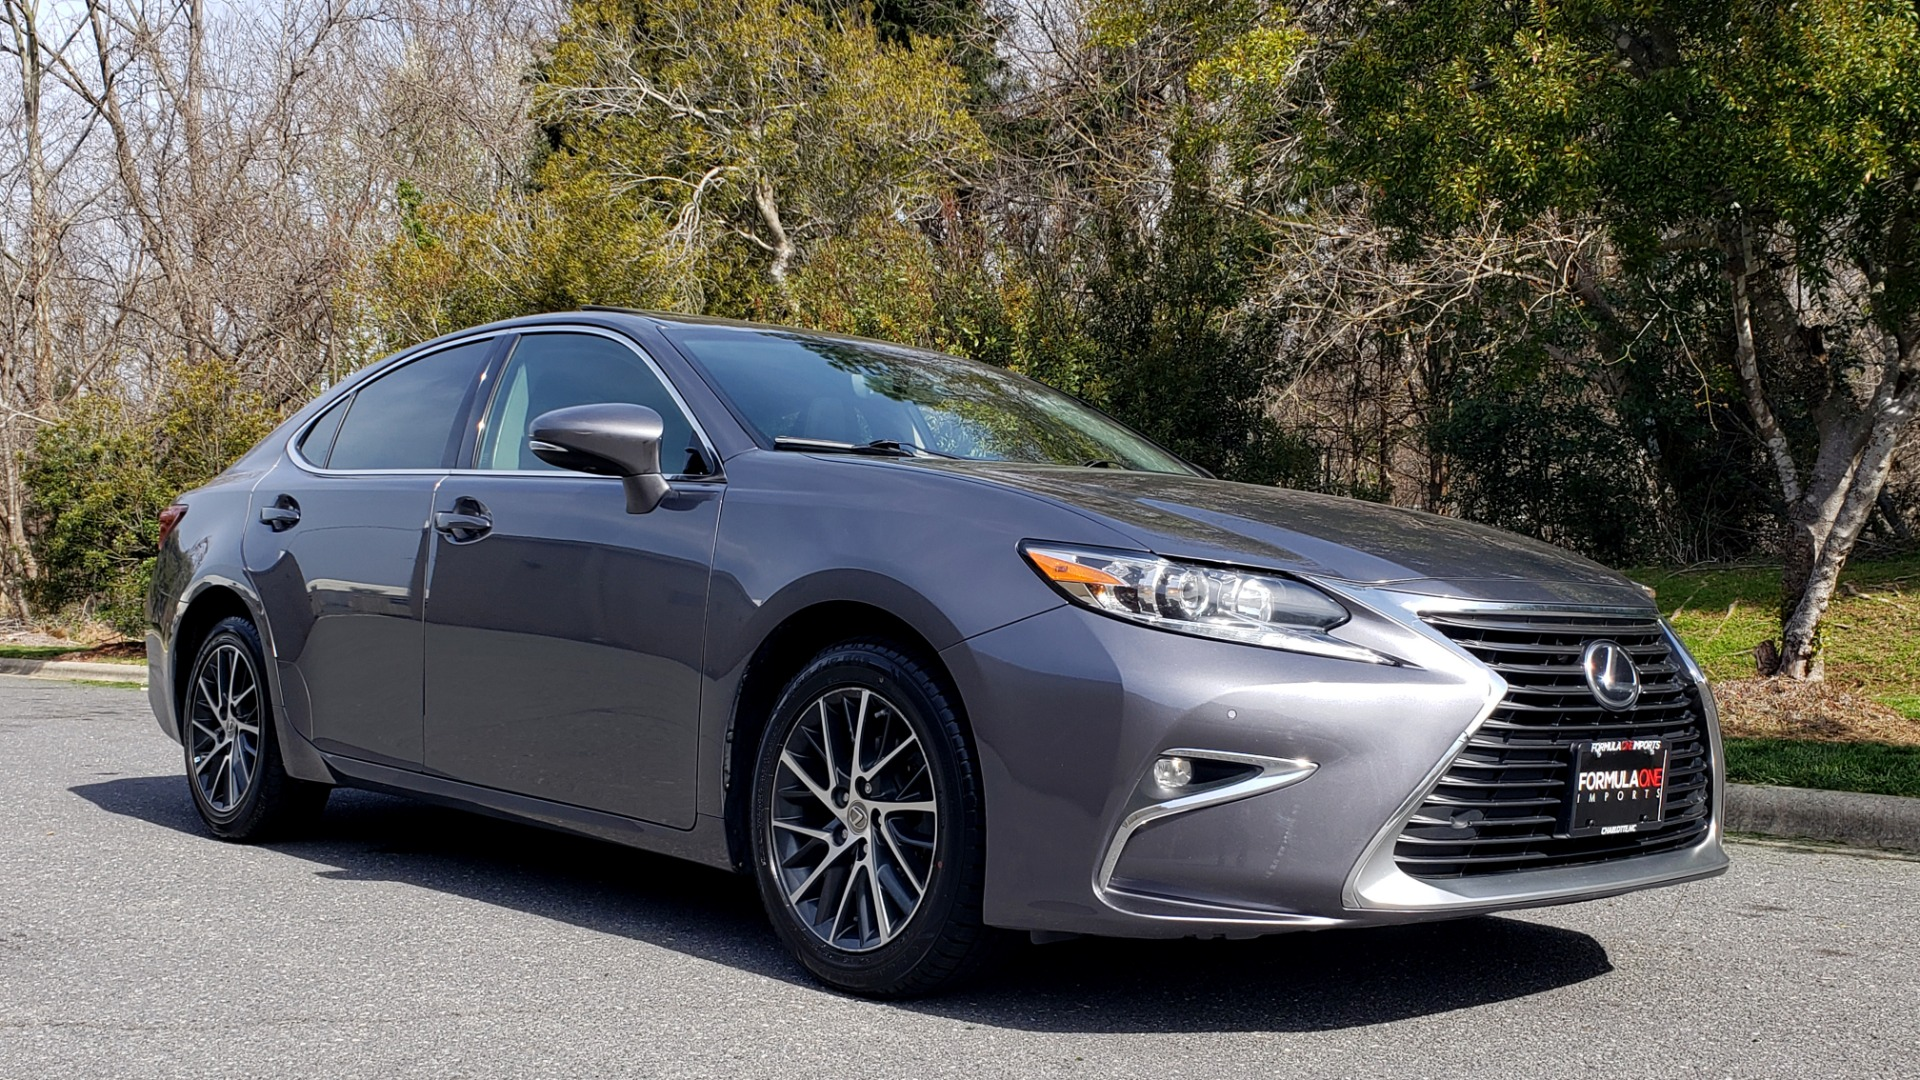 Used 2016 Lexus ES 350 4-DR PREMIUM / SUNROOF / BSM / REARVIEW / VENT STS for sale Sold at Formula Imports in Charlotte NC 28227 4